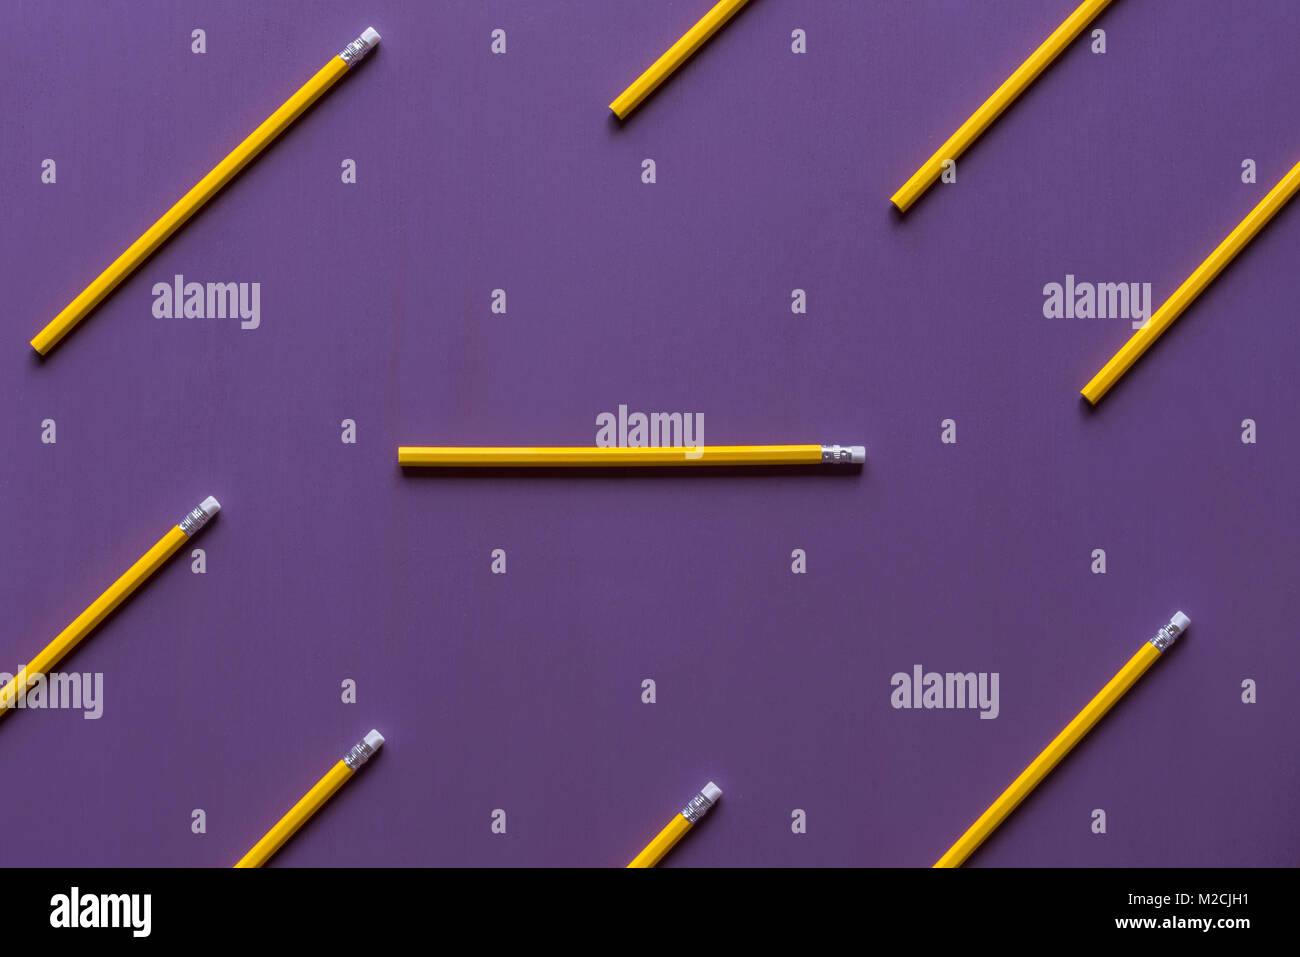 Wooden pencils with eraser tops arranged parallelly and only  one in horizontally, out of context, with space for - Stock Image